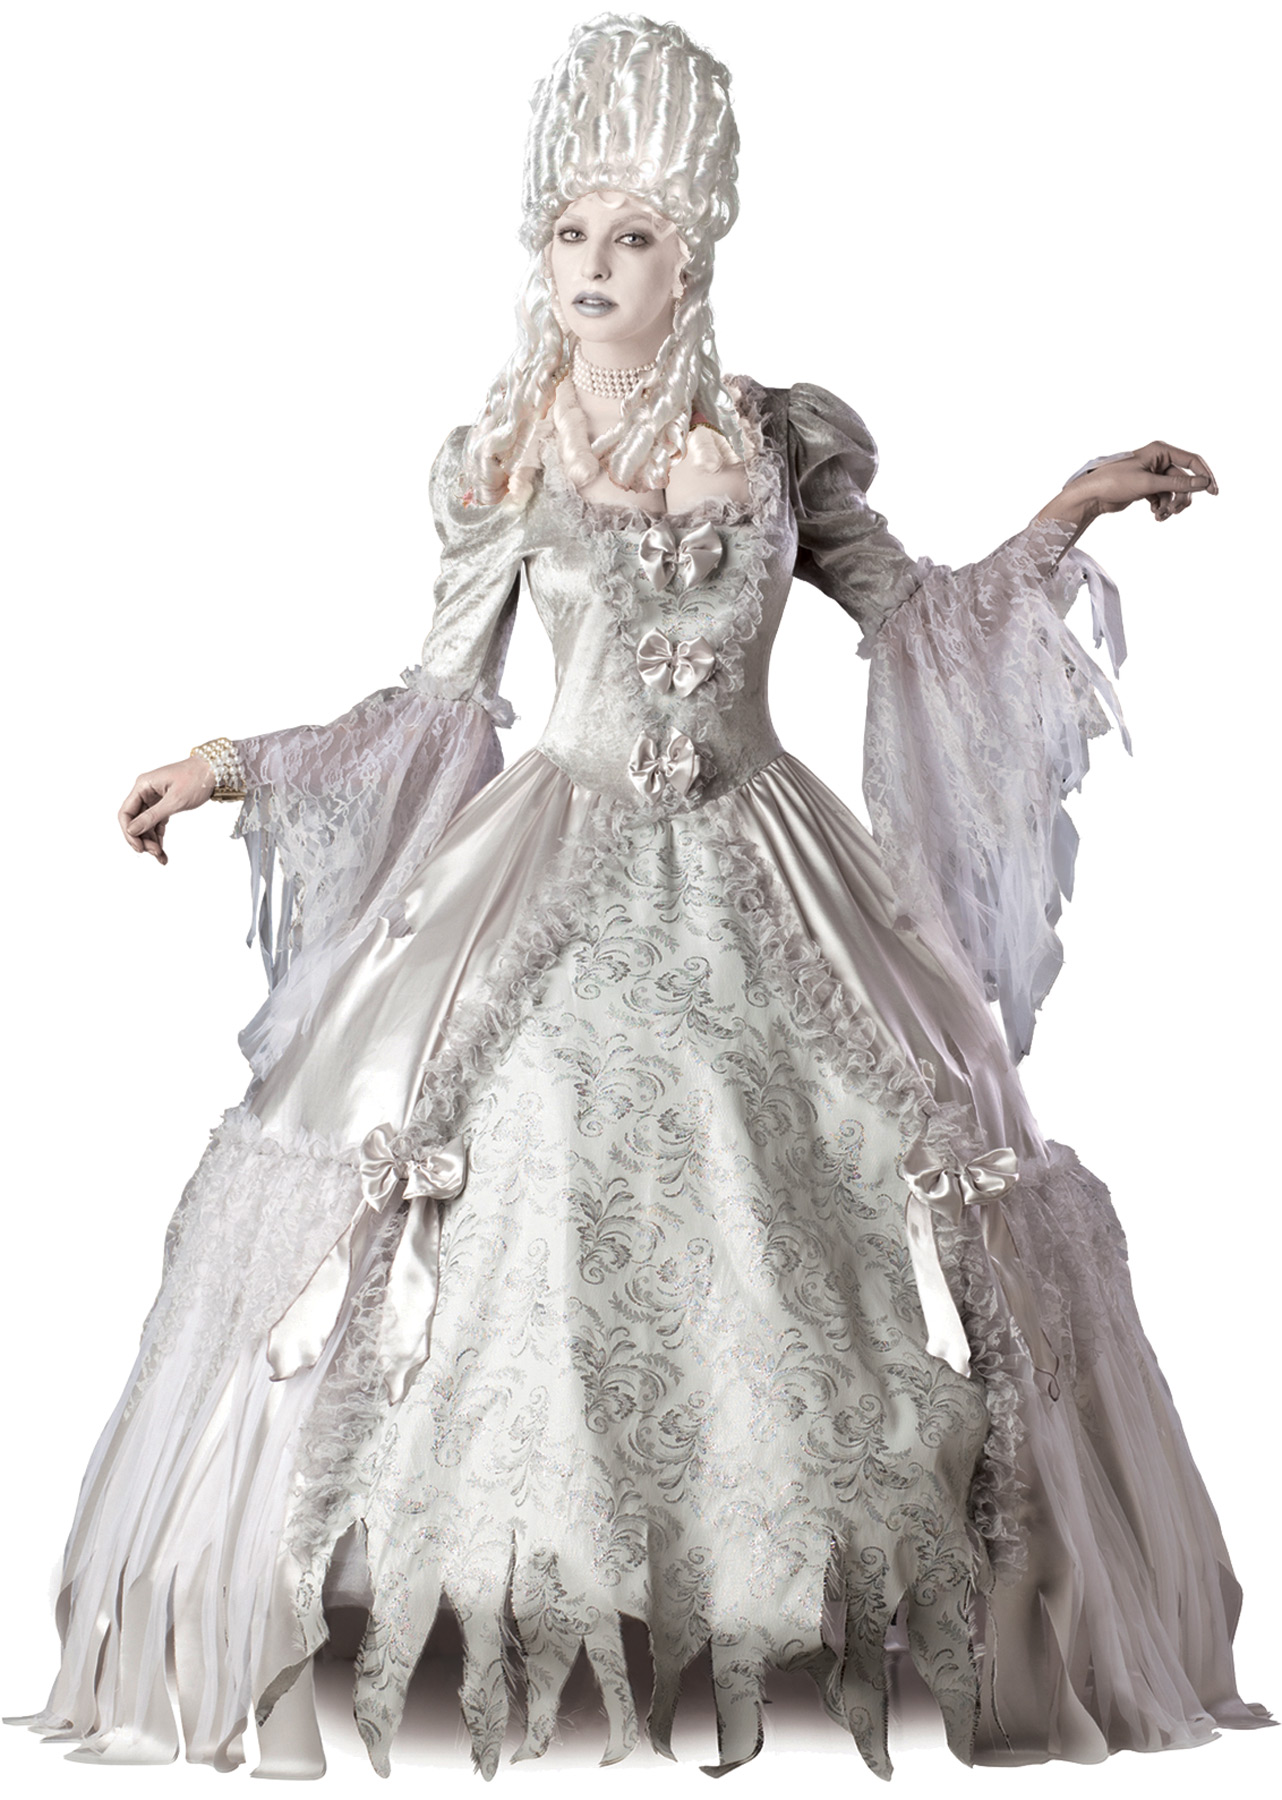 Fantastic 17th Century Countess Ghost Costume